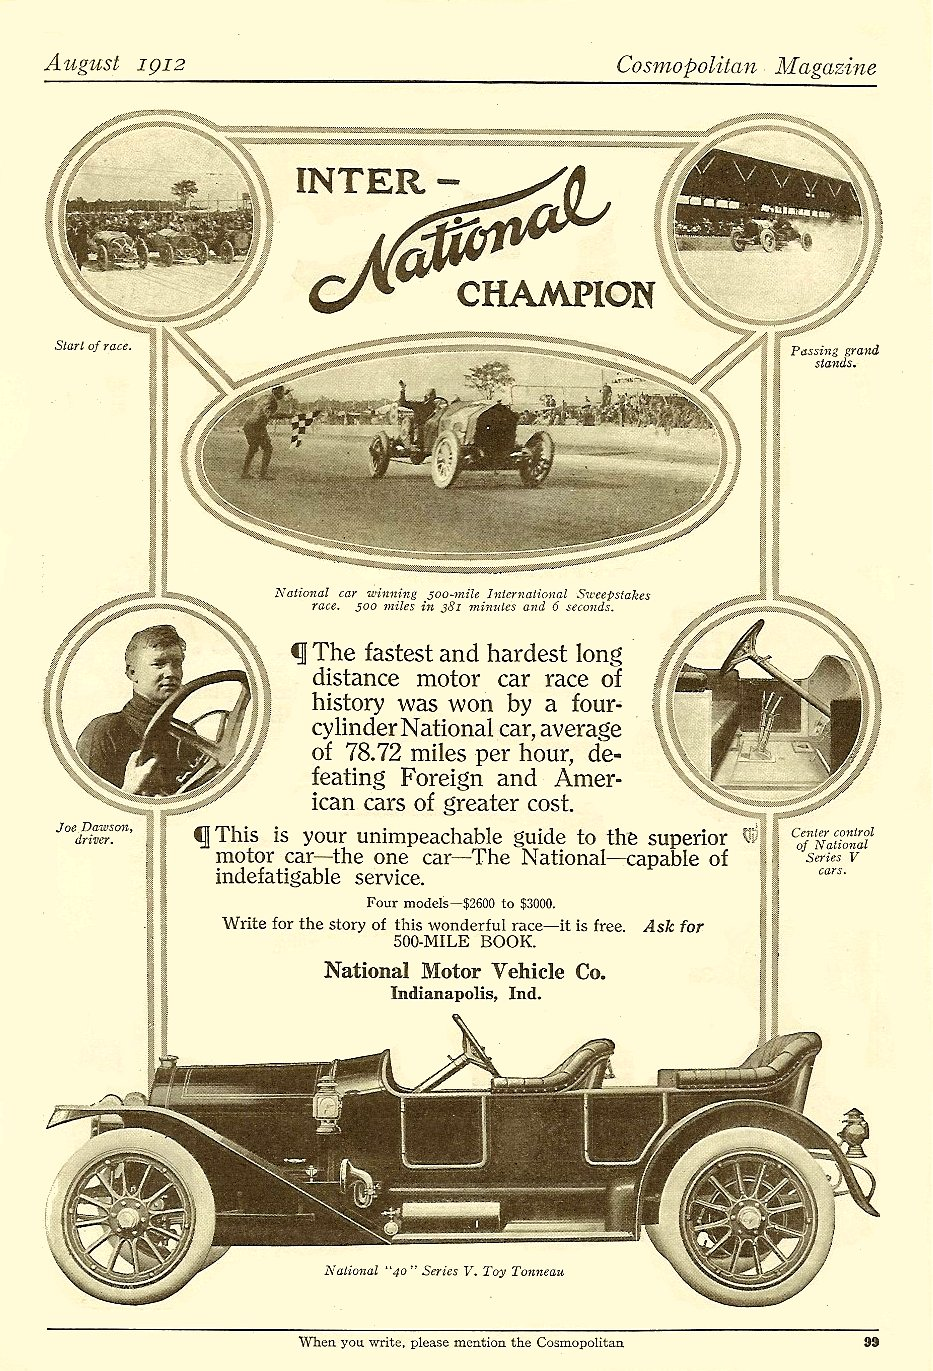 1912 8 National Inter- National Champion Cosmopolitan magazine August 1912 6.25″x9.5″ page 99